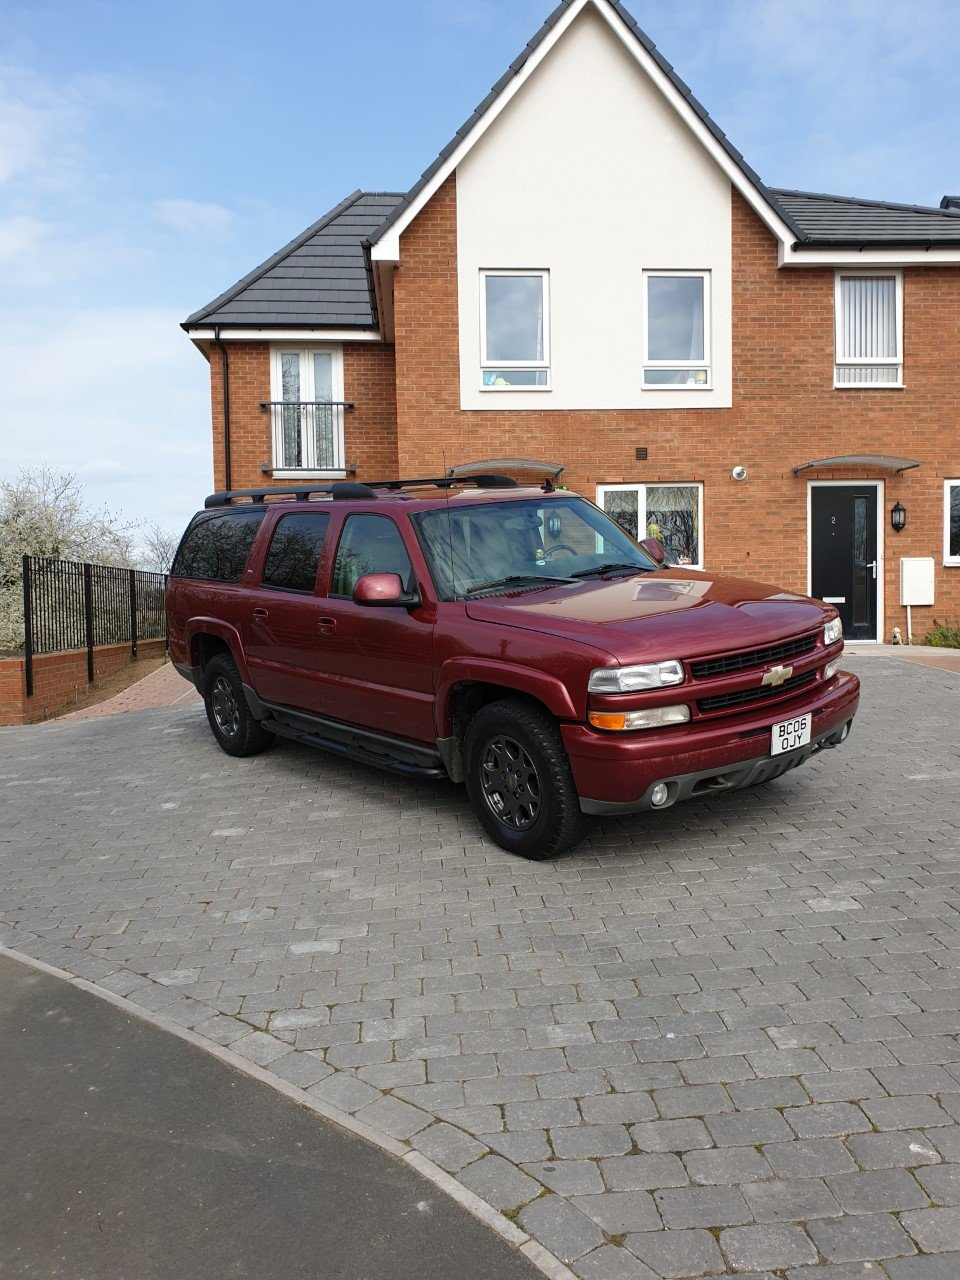 2006 Chevrolet Suburban Z71 Top Spec For Sale (picture 1 of 6)